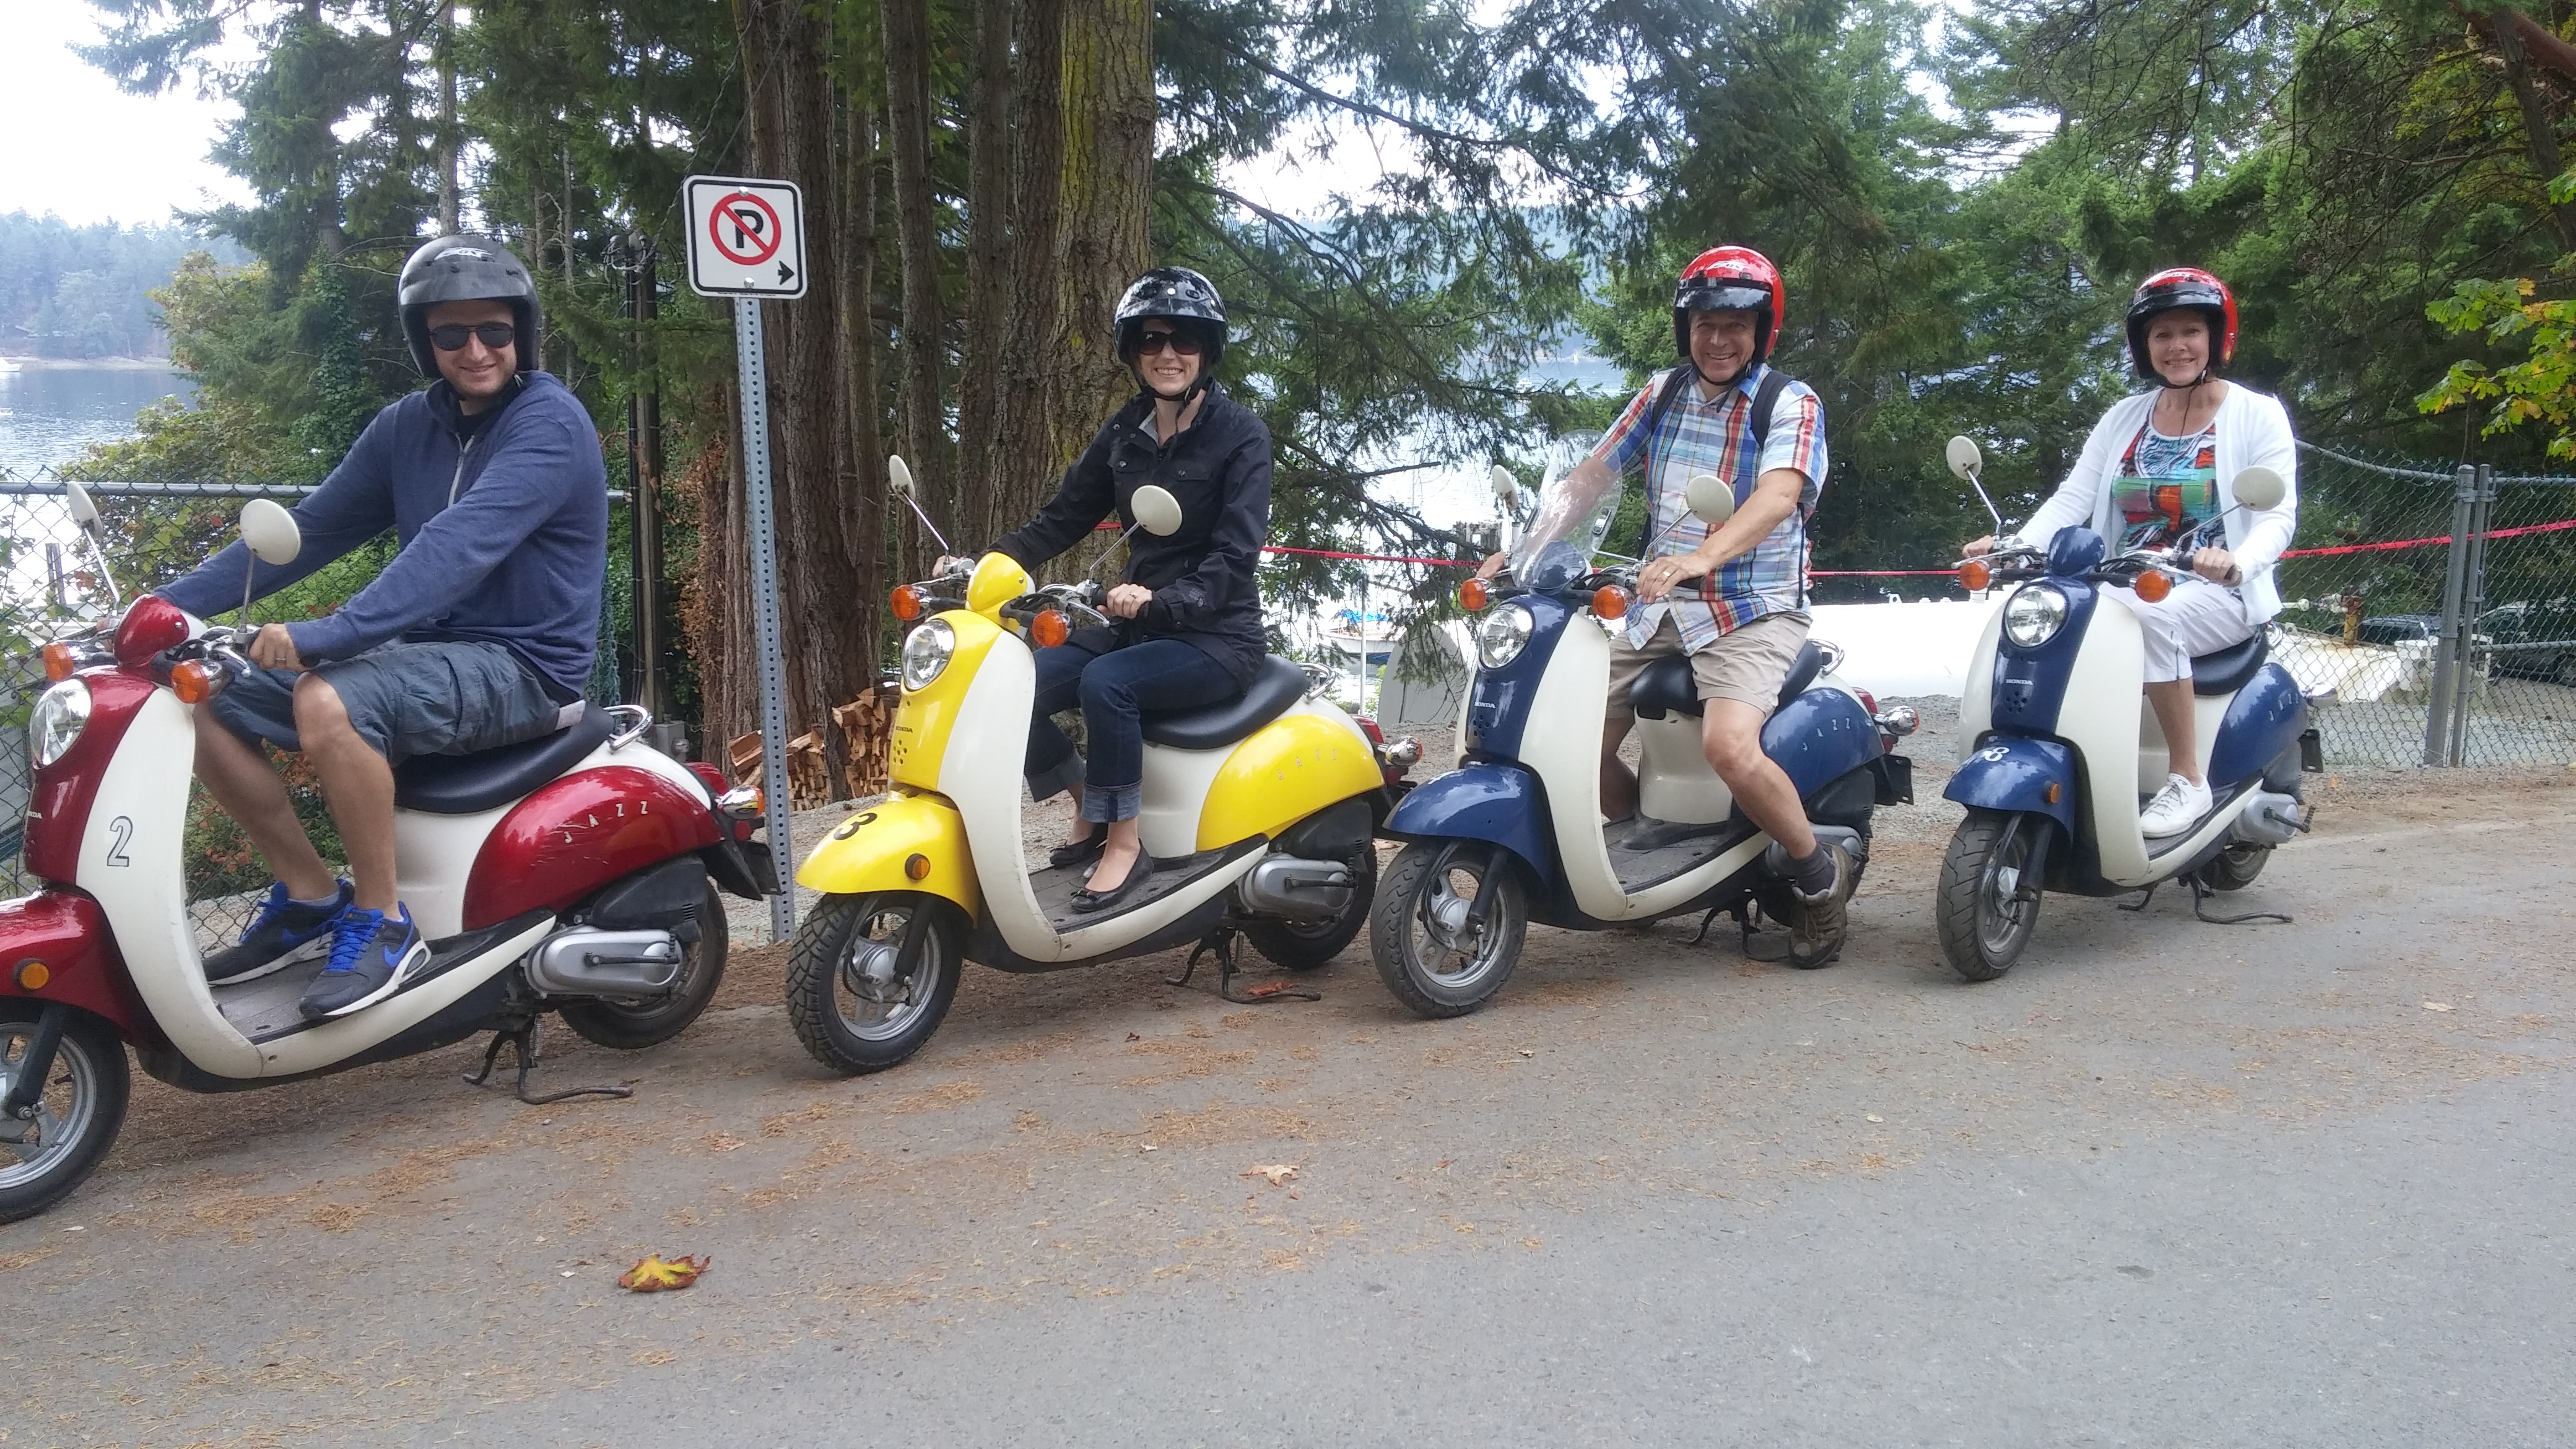 Scooter Rentals On Orcas Island